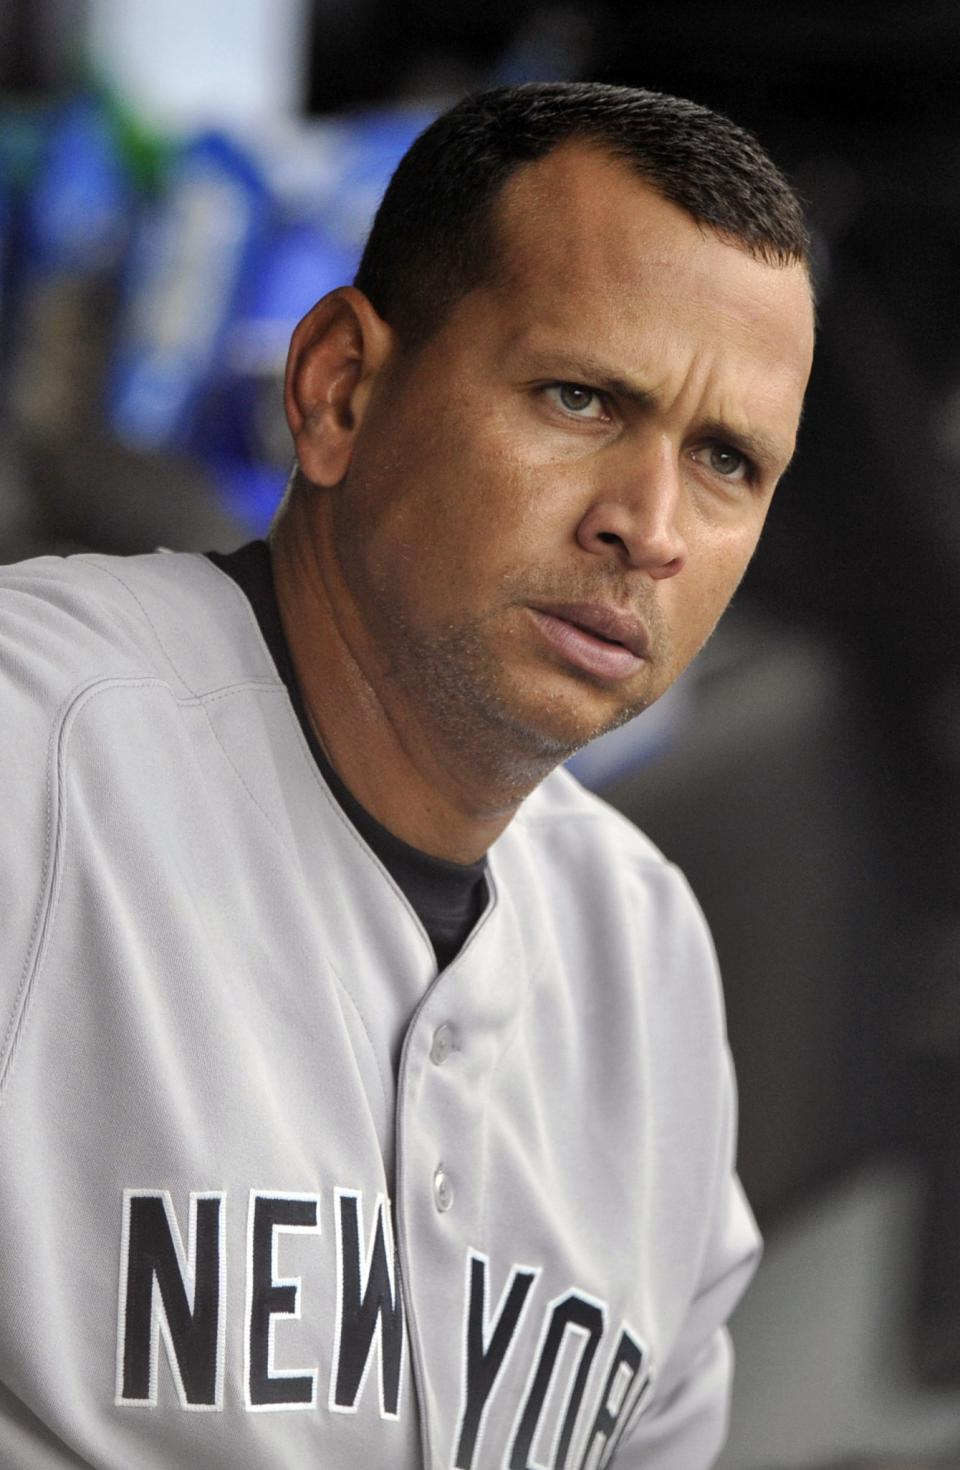 New York Yankees' Alex Rodriguez looks on from the dugout during the first inning of a baseball game against the Chicago White Sox in Chicago, Monday, Aug. 5, 2013. (AP Photo/Paul Beaty)